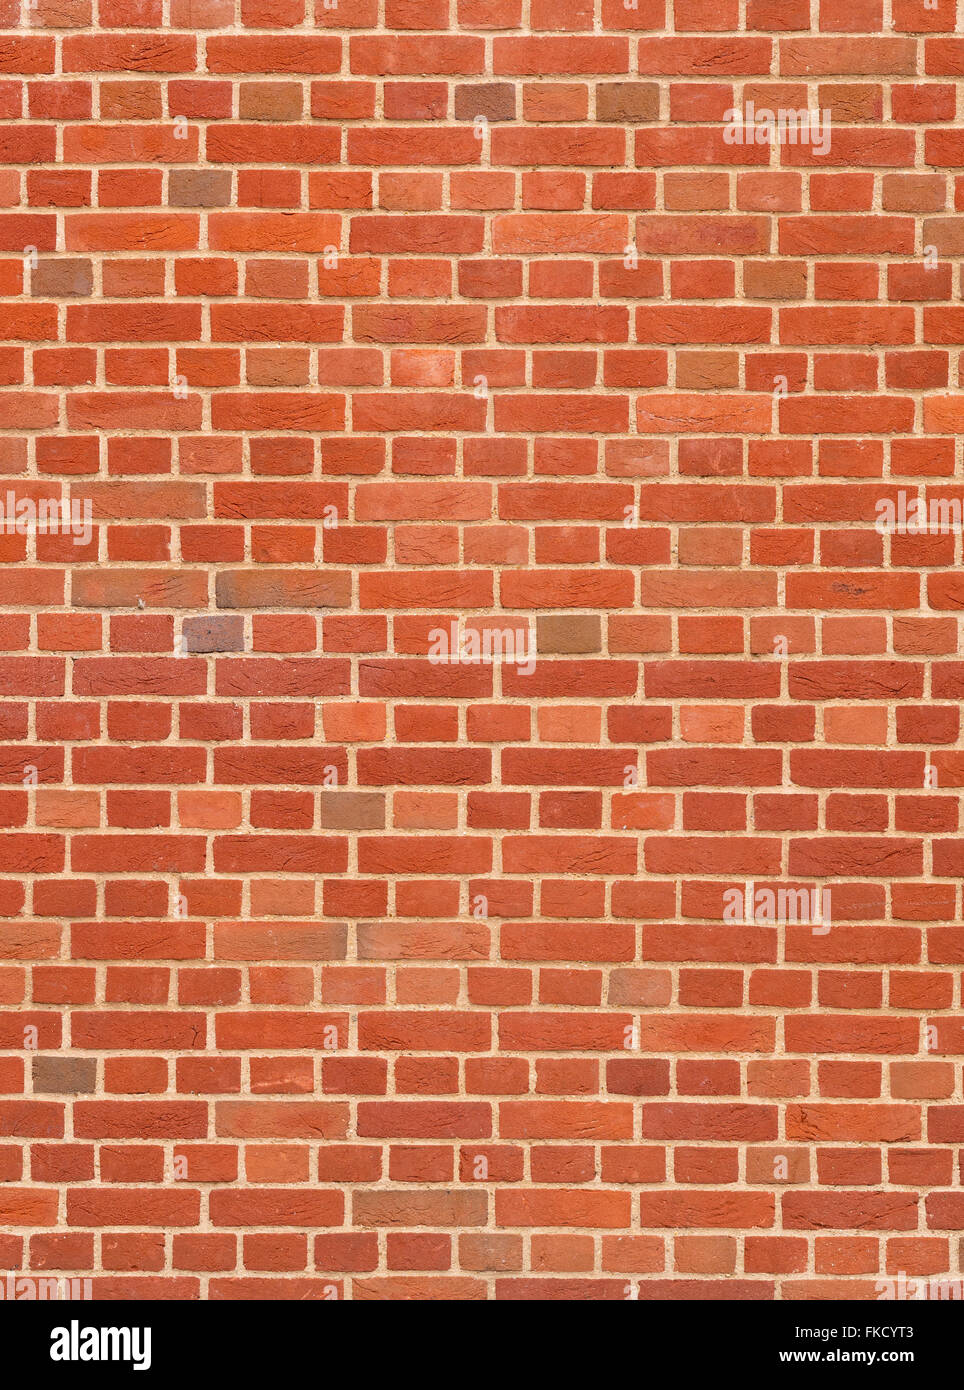 Modern wall with rows of red bricks close up. - Stock Image